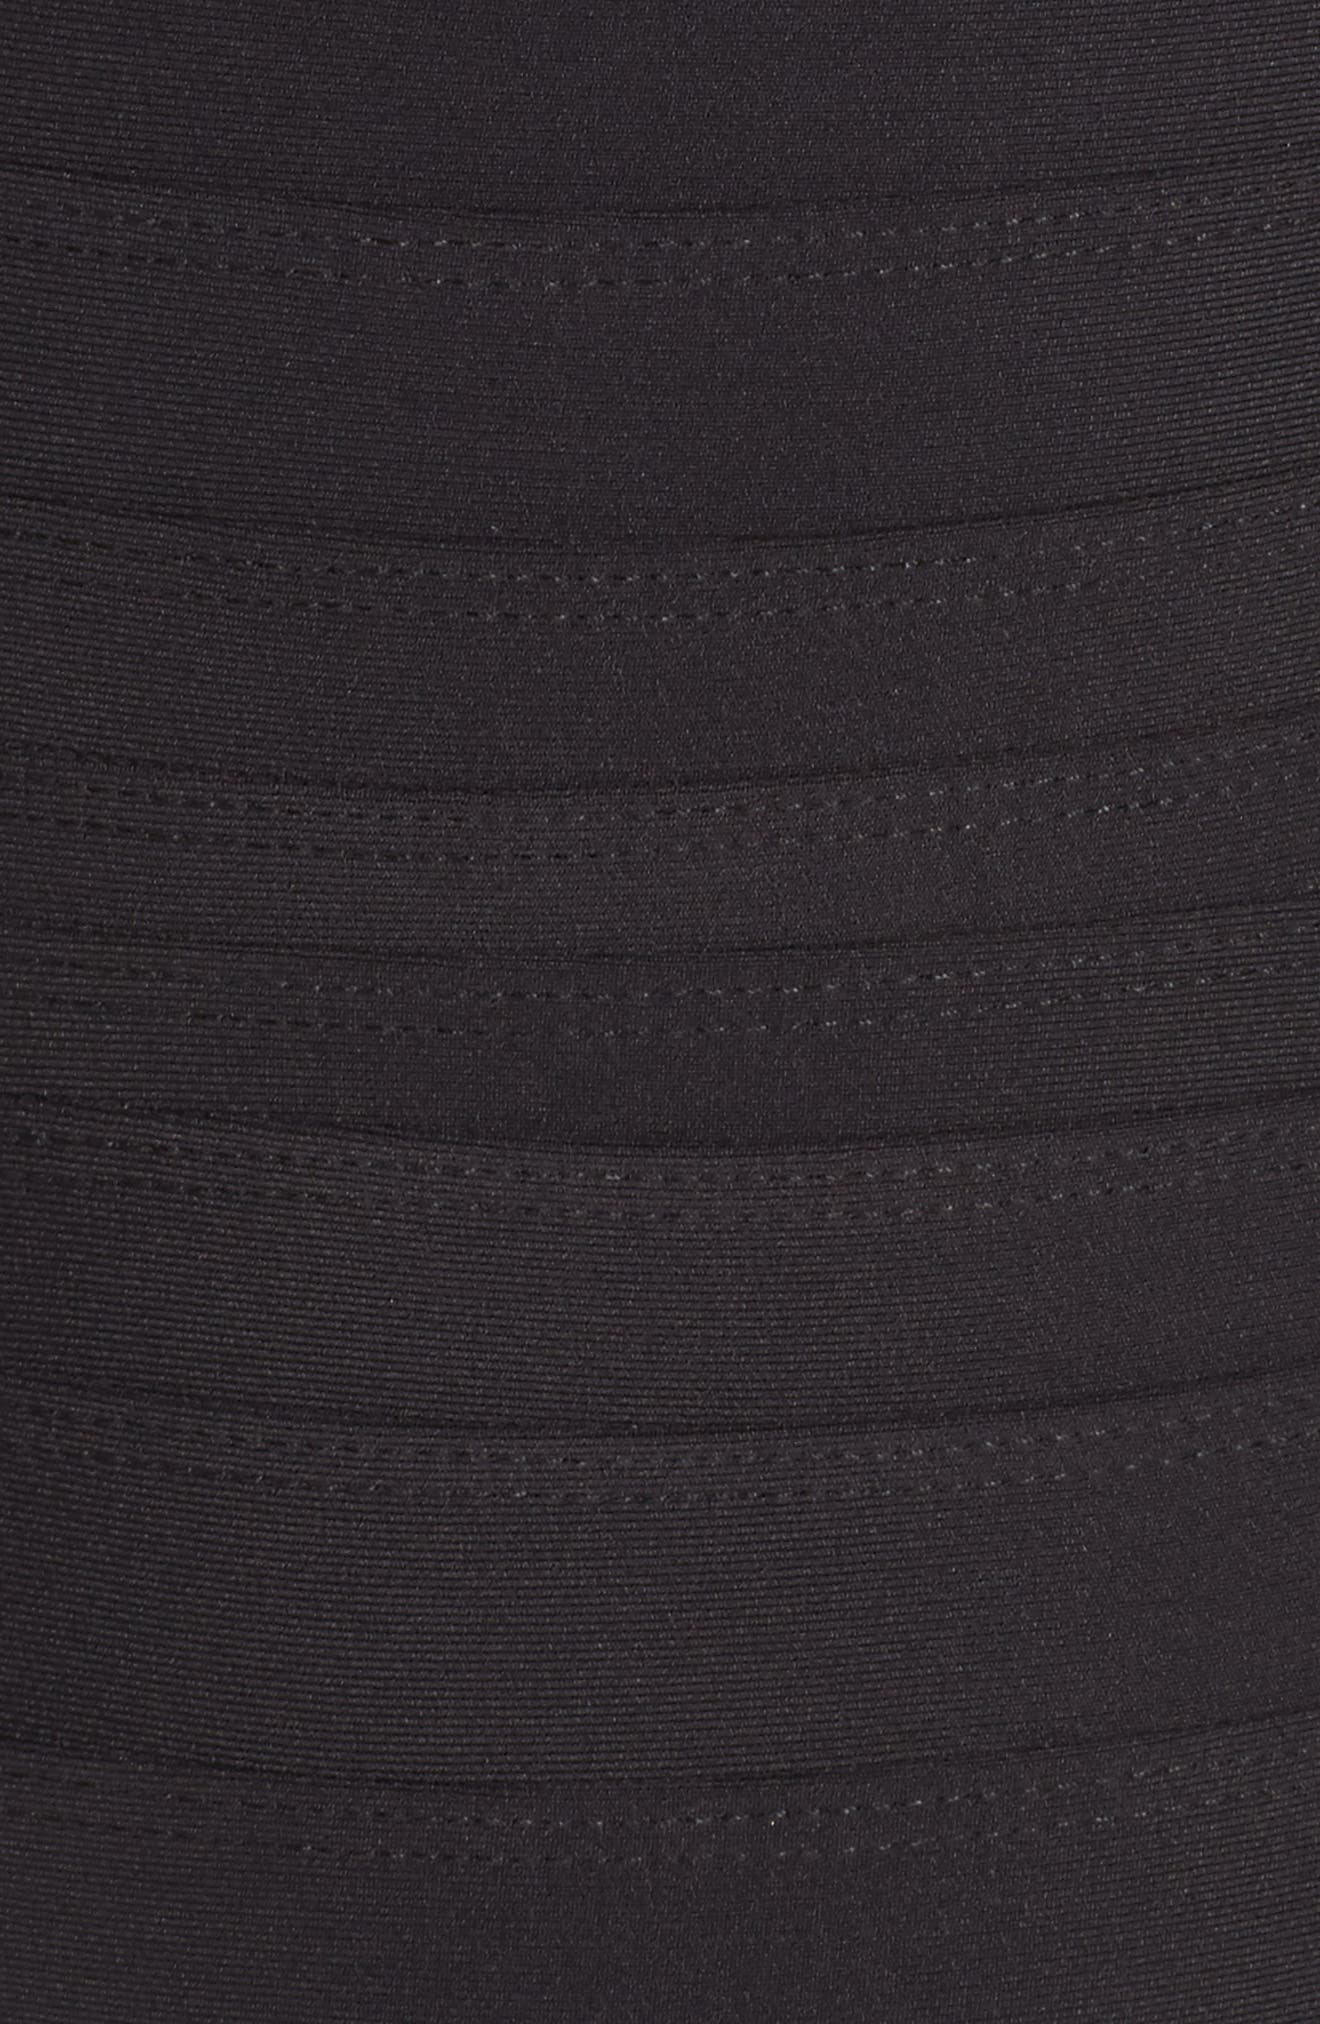 'Spectra' Banded Maillot,                             Alternate thumbnail 6, color,                             BLACK TONES